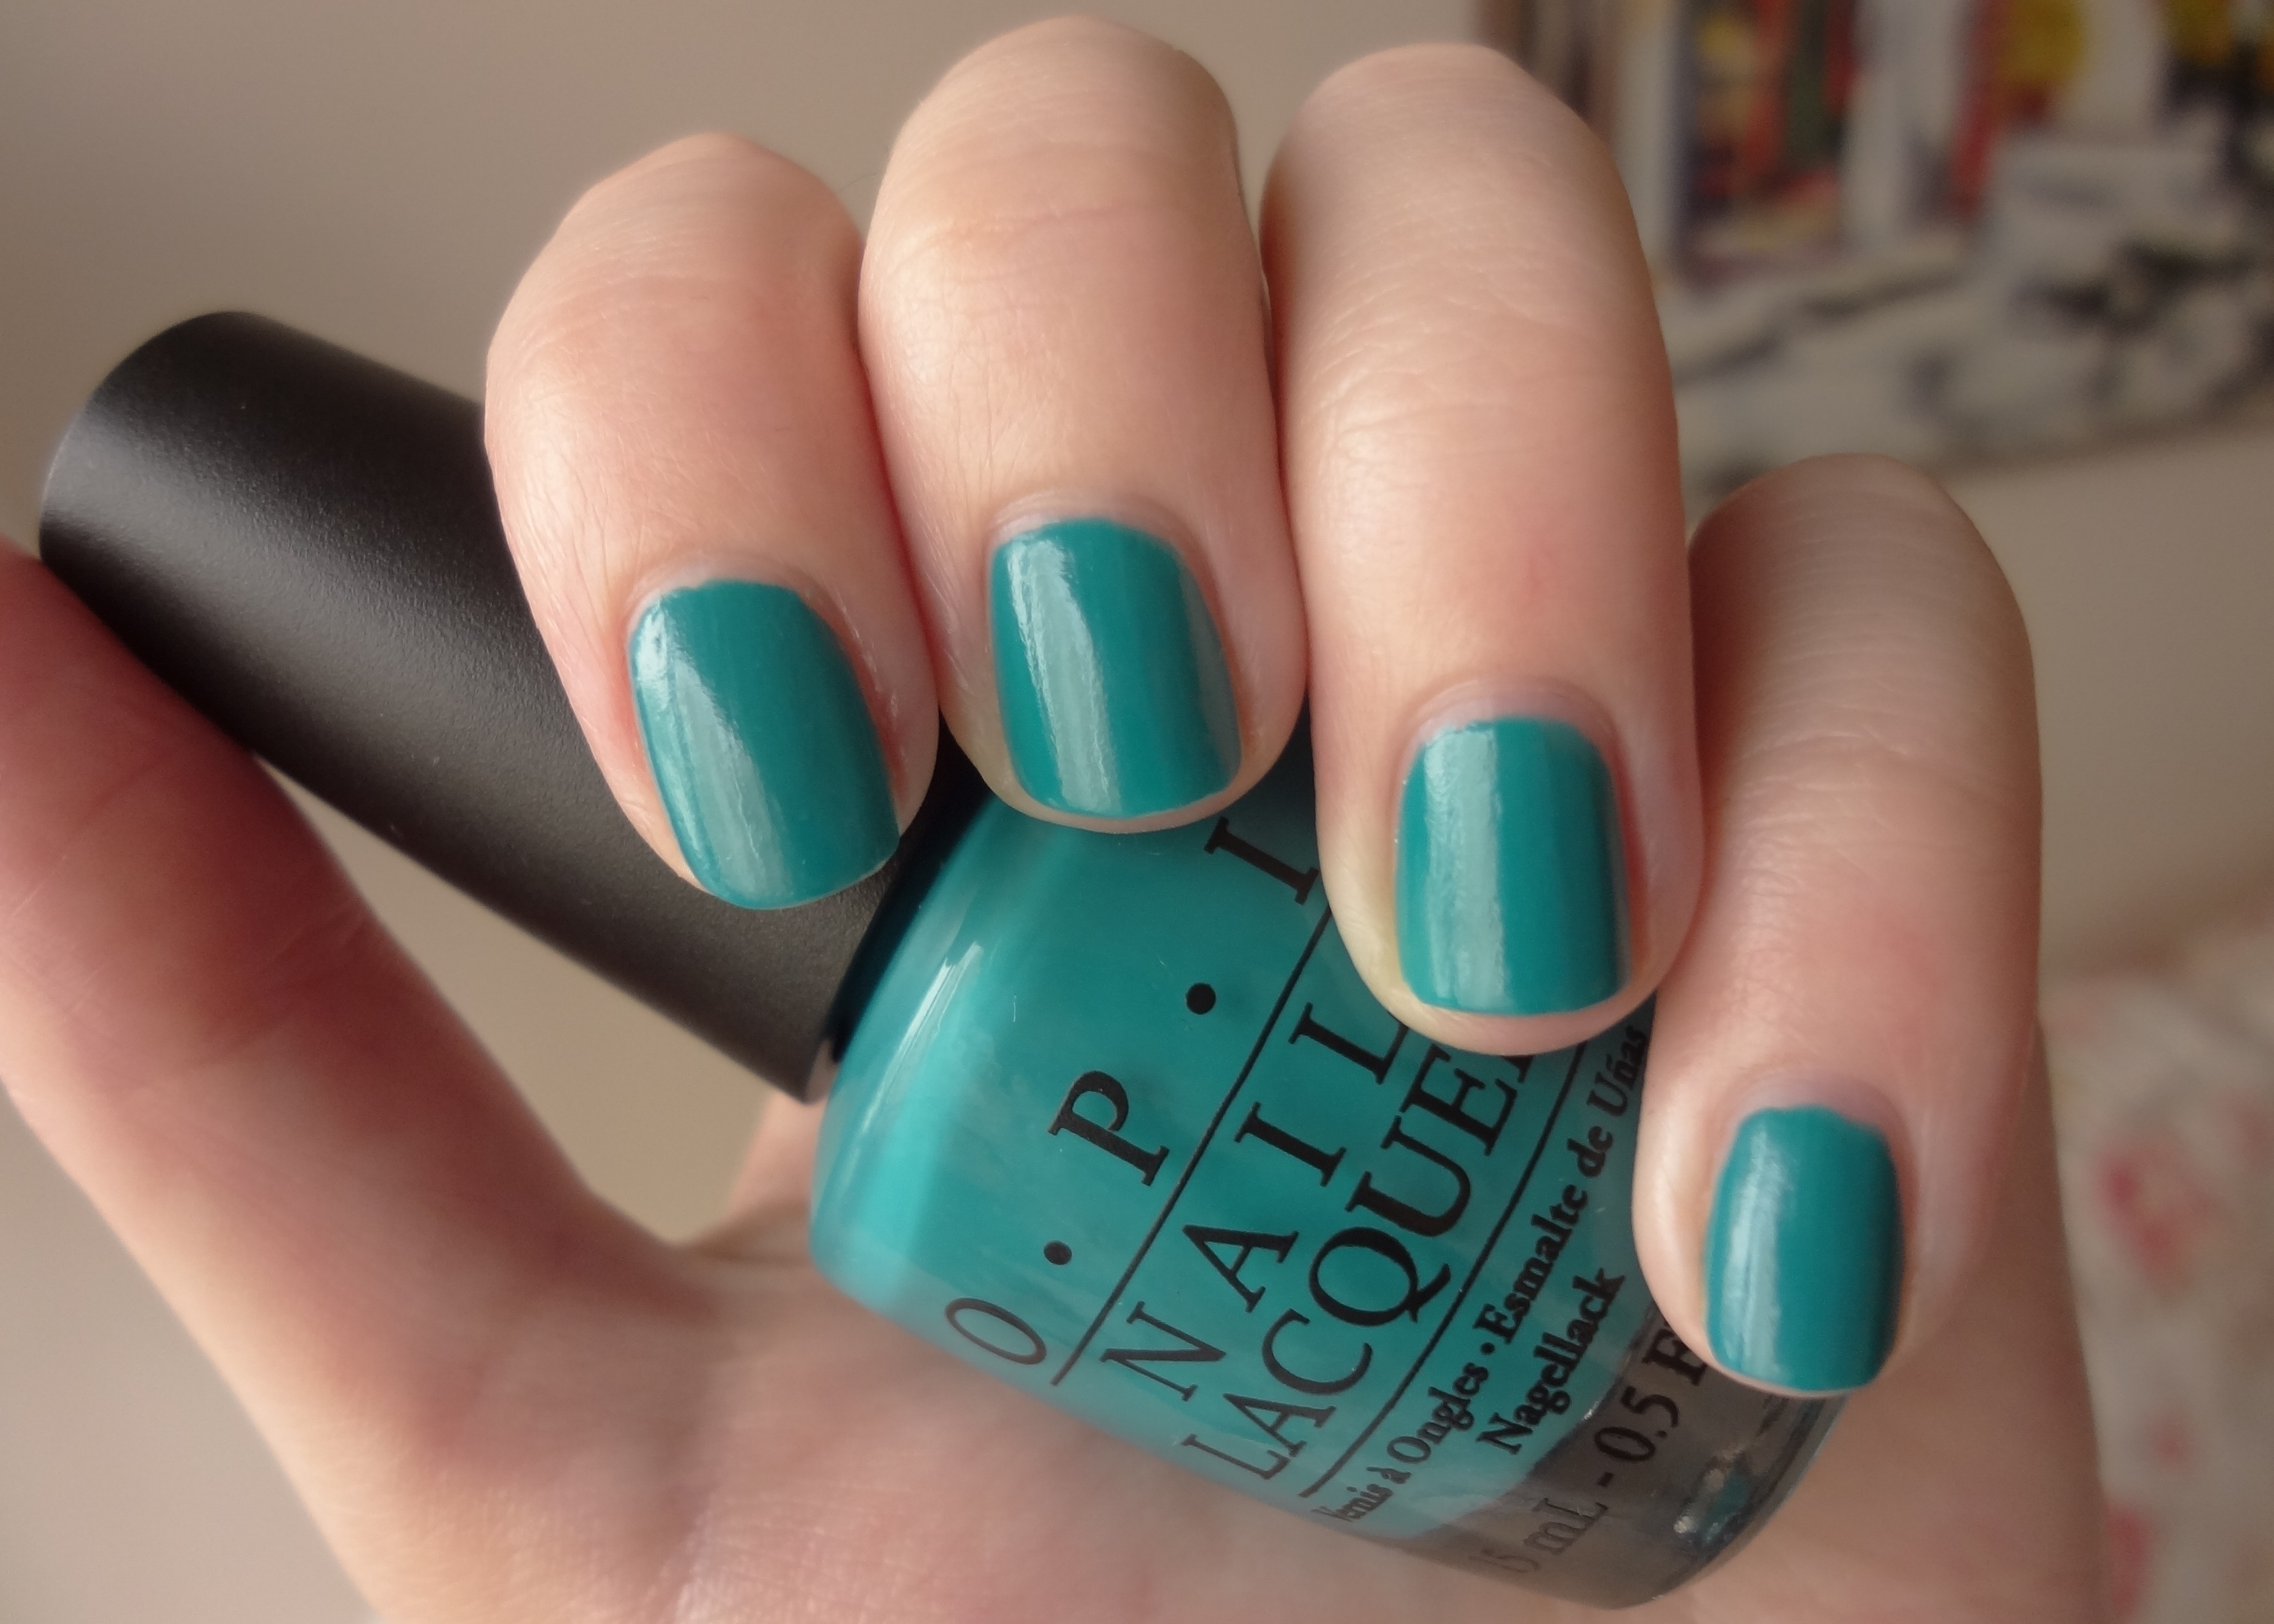 teal | Through The Looking Glass